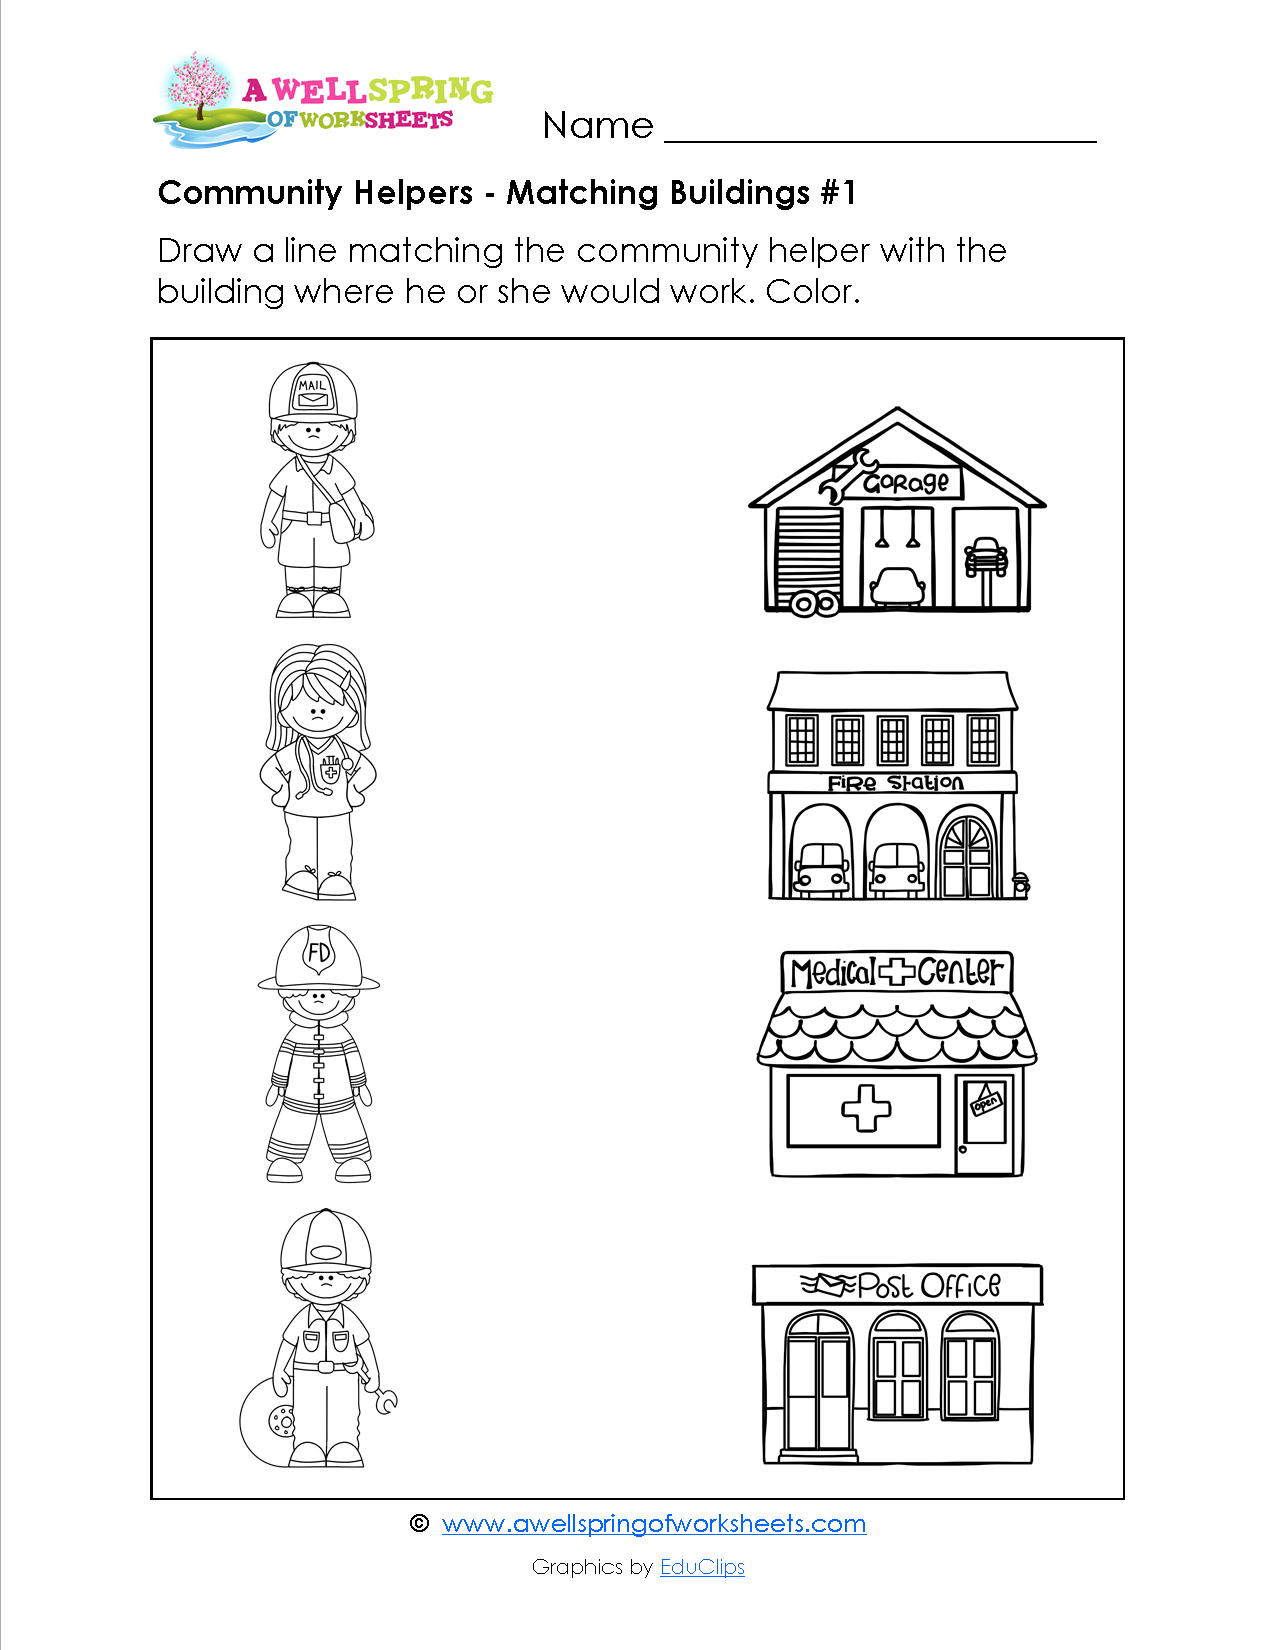 Worksheets Communities Worksheets in these community helpers matching worksheets kids draw a line from the helper to the